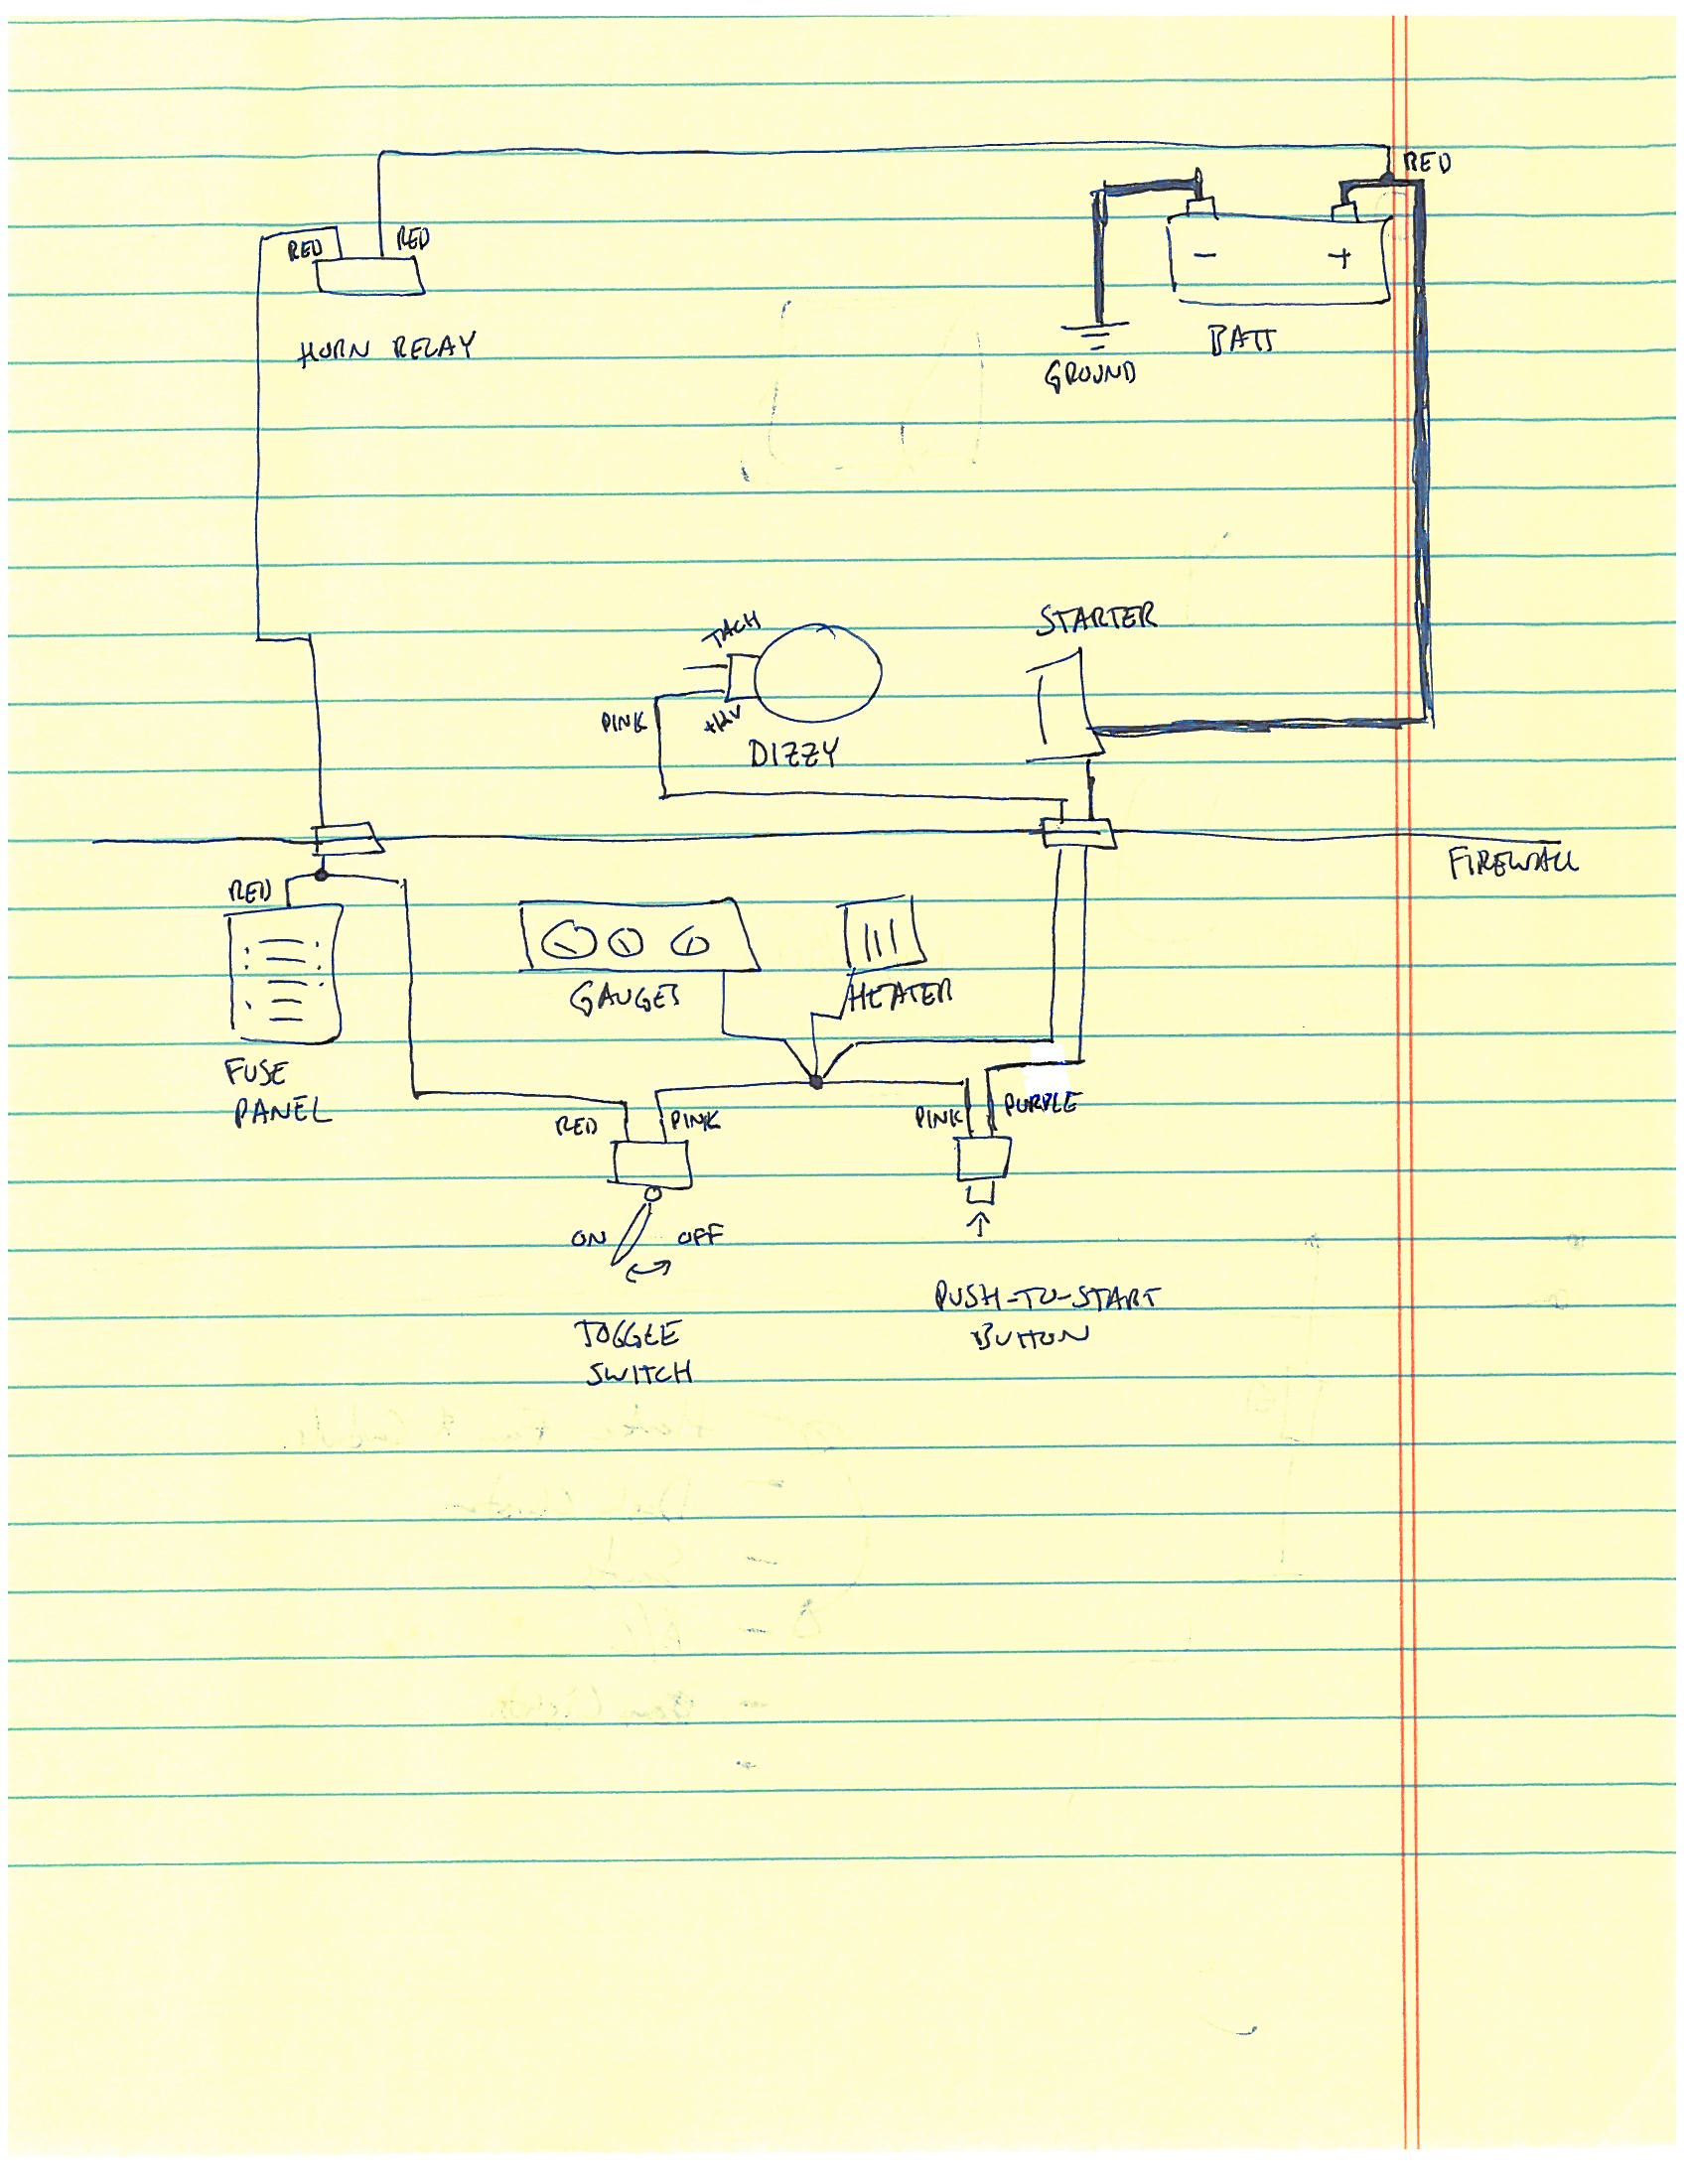 1964 Gmc Ignition Switch Wiring Starting Know About Diagram Caterpillar For 72 Chevy Pickup With Tach Get